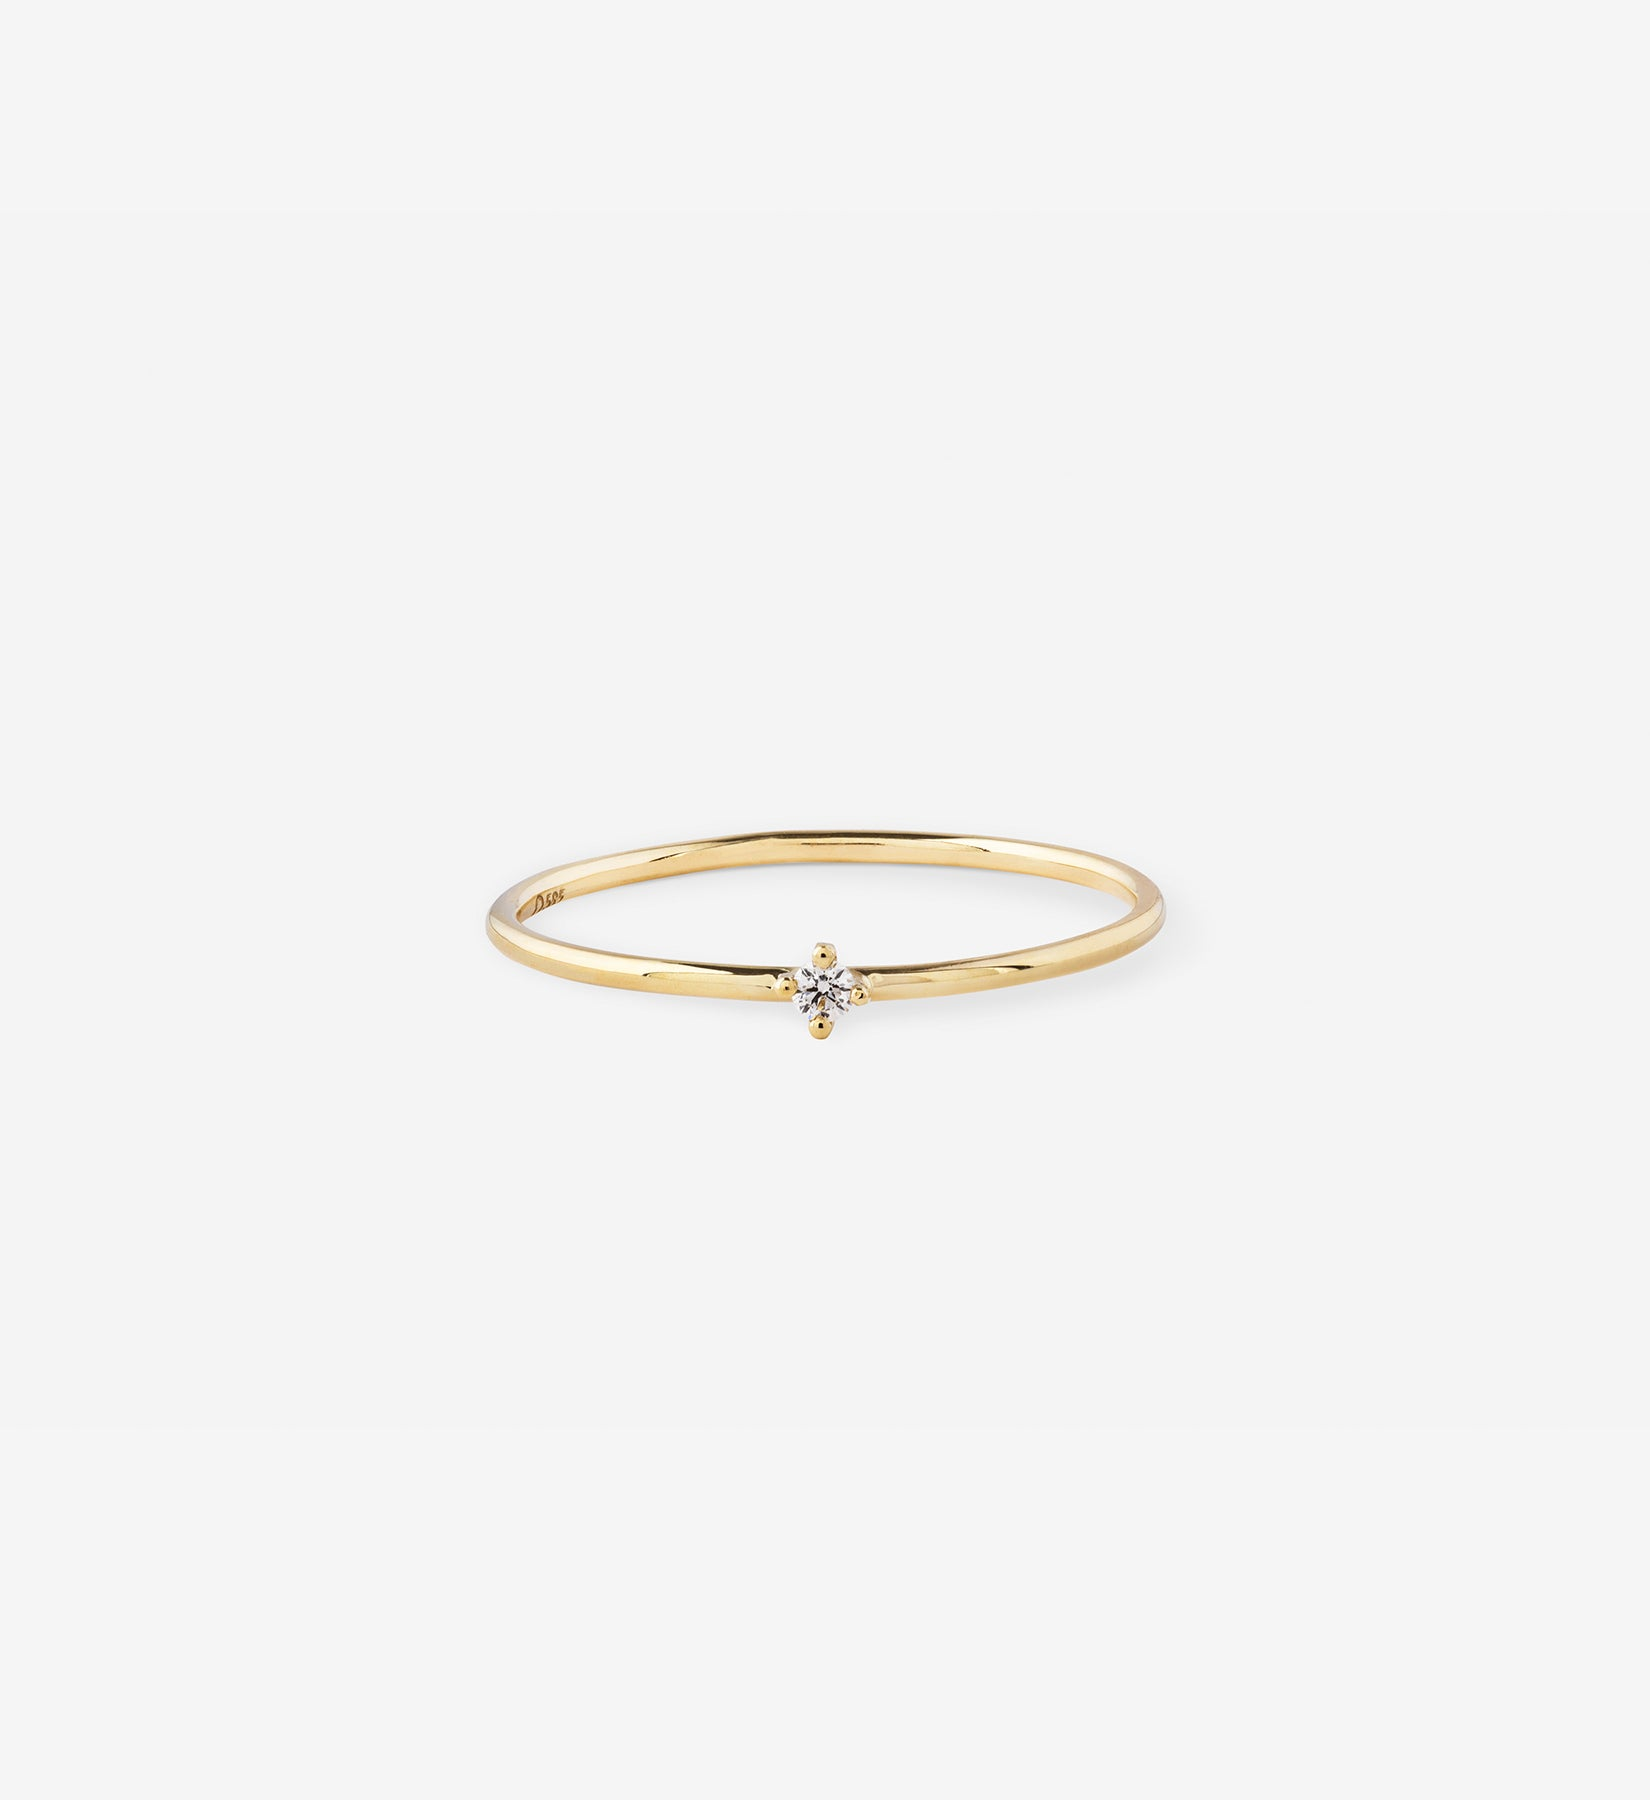 Tiny Diamond Ring 0.02 in 14K Gold